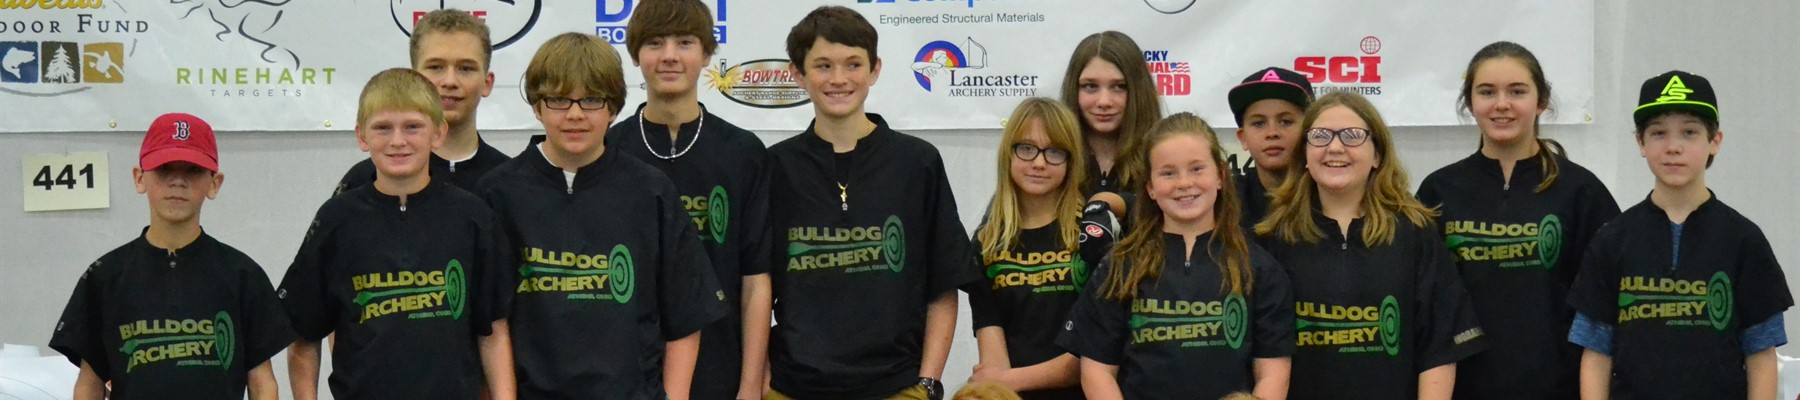 Athens Archery Team Members